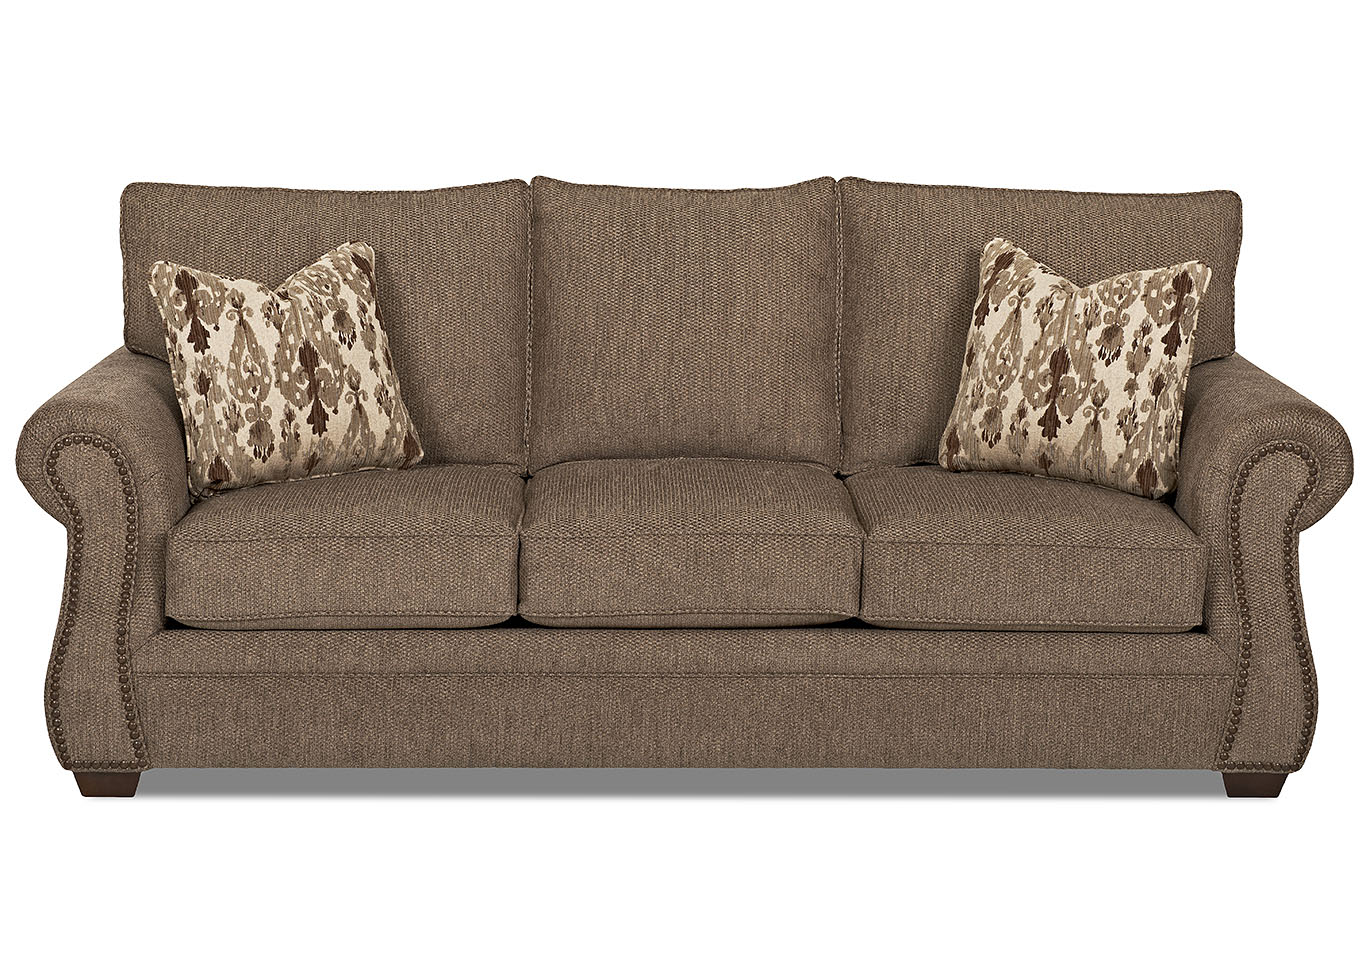 Jasper Otter Brown Stationary Fabric Sofa,Klaussner Home Furnishings